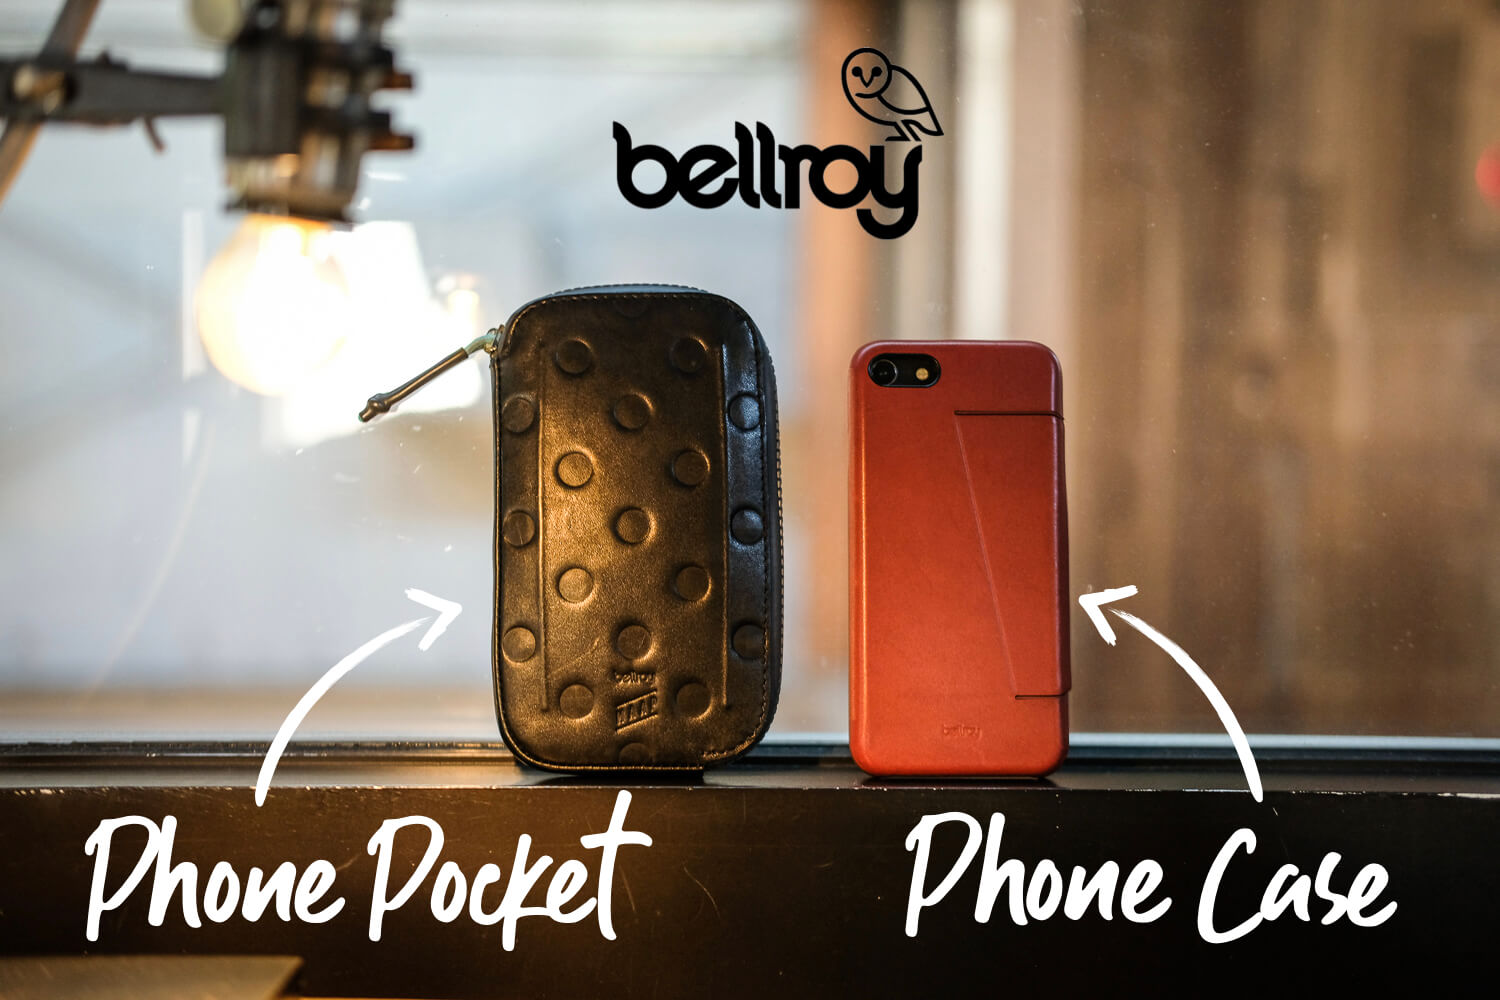 Bellroy Phone Pocket & Case